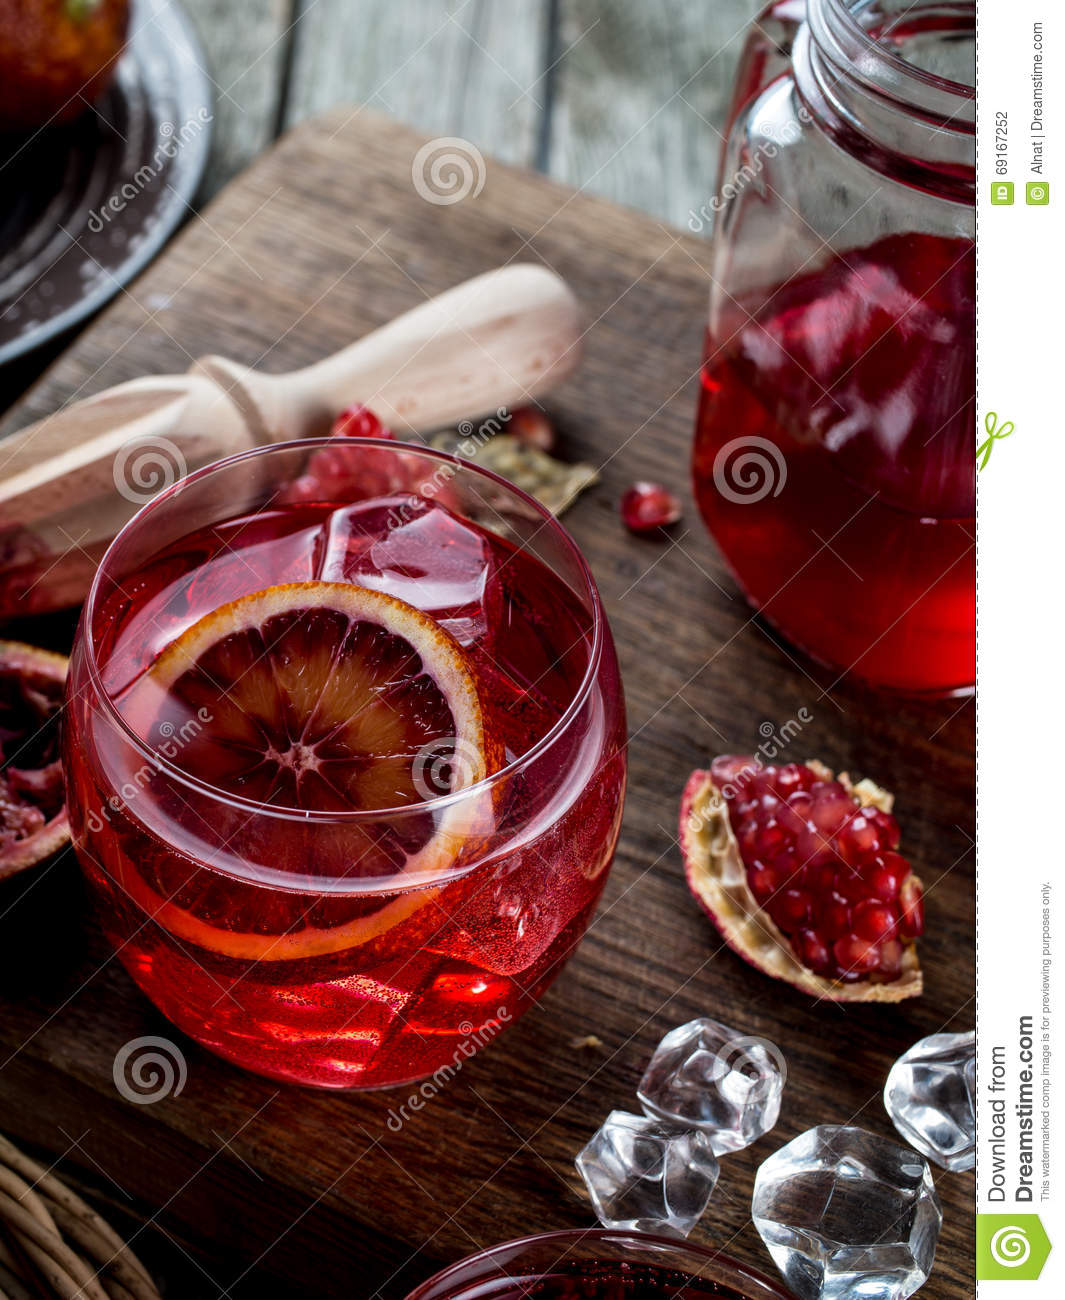 Blood Orange And Pomegranate Cocktails Stock Photo - Image: 69167252